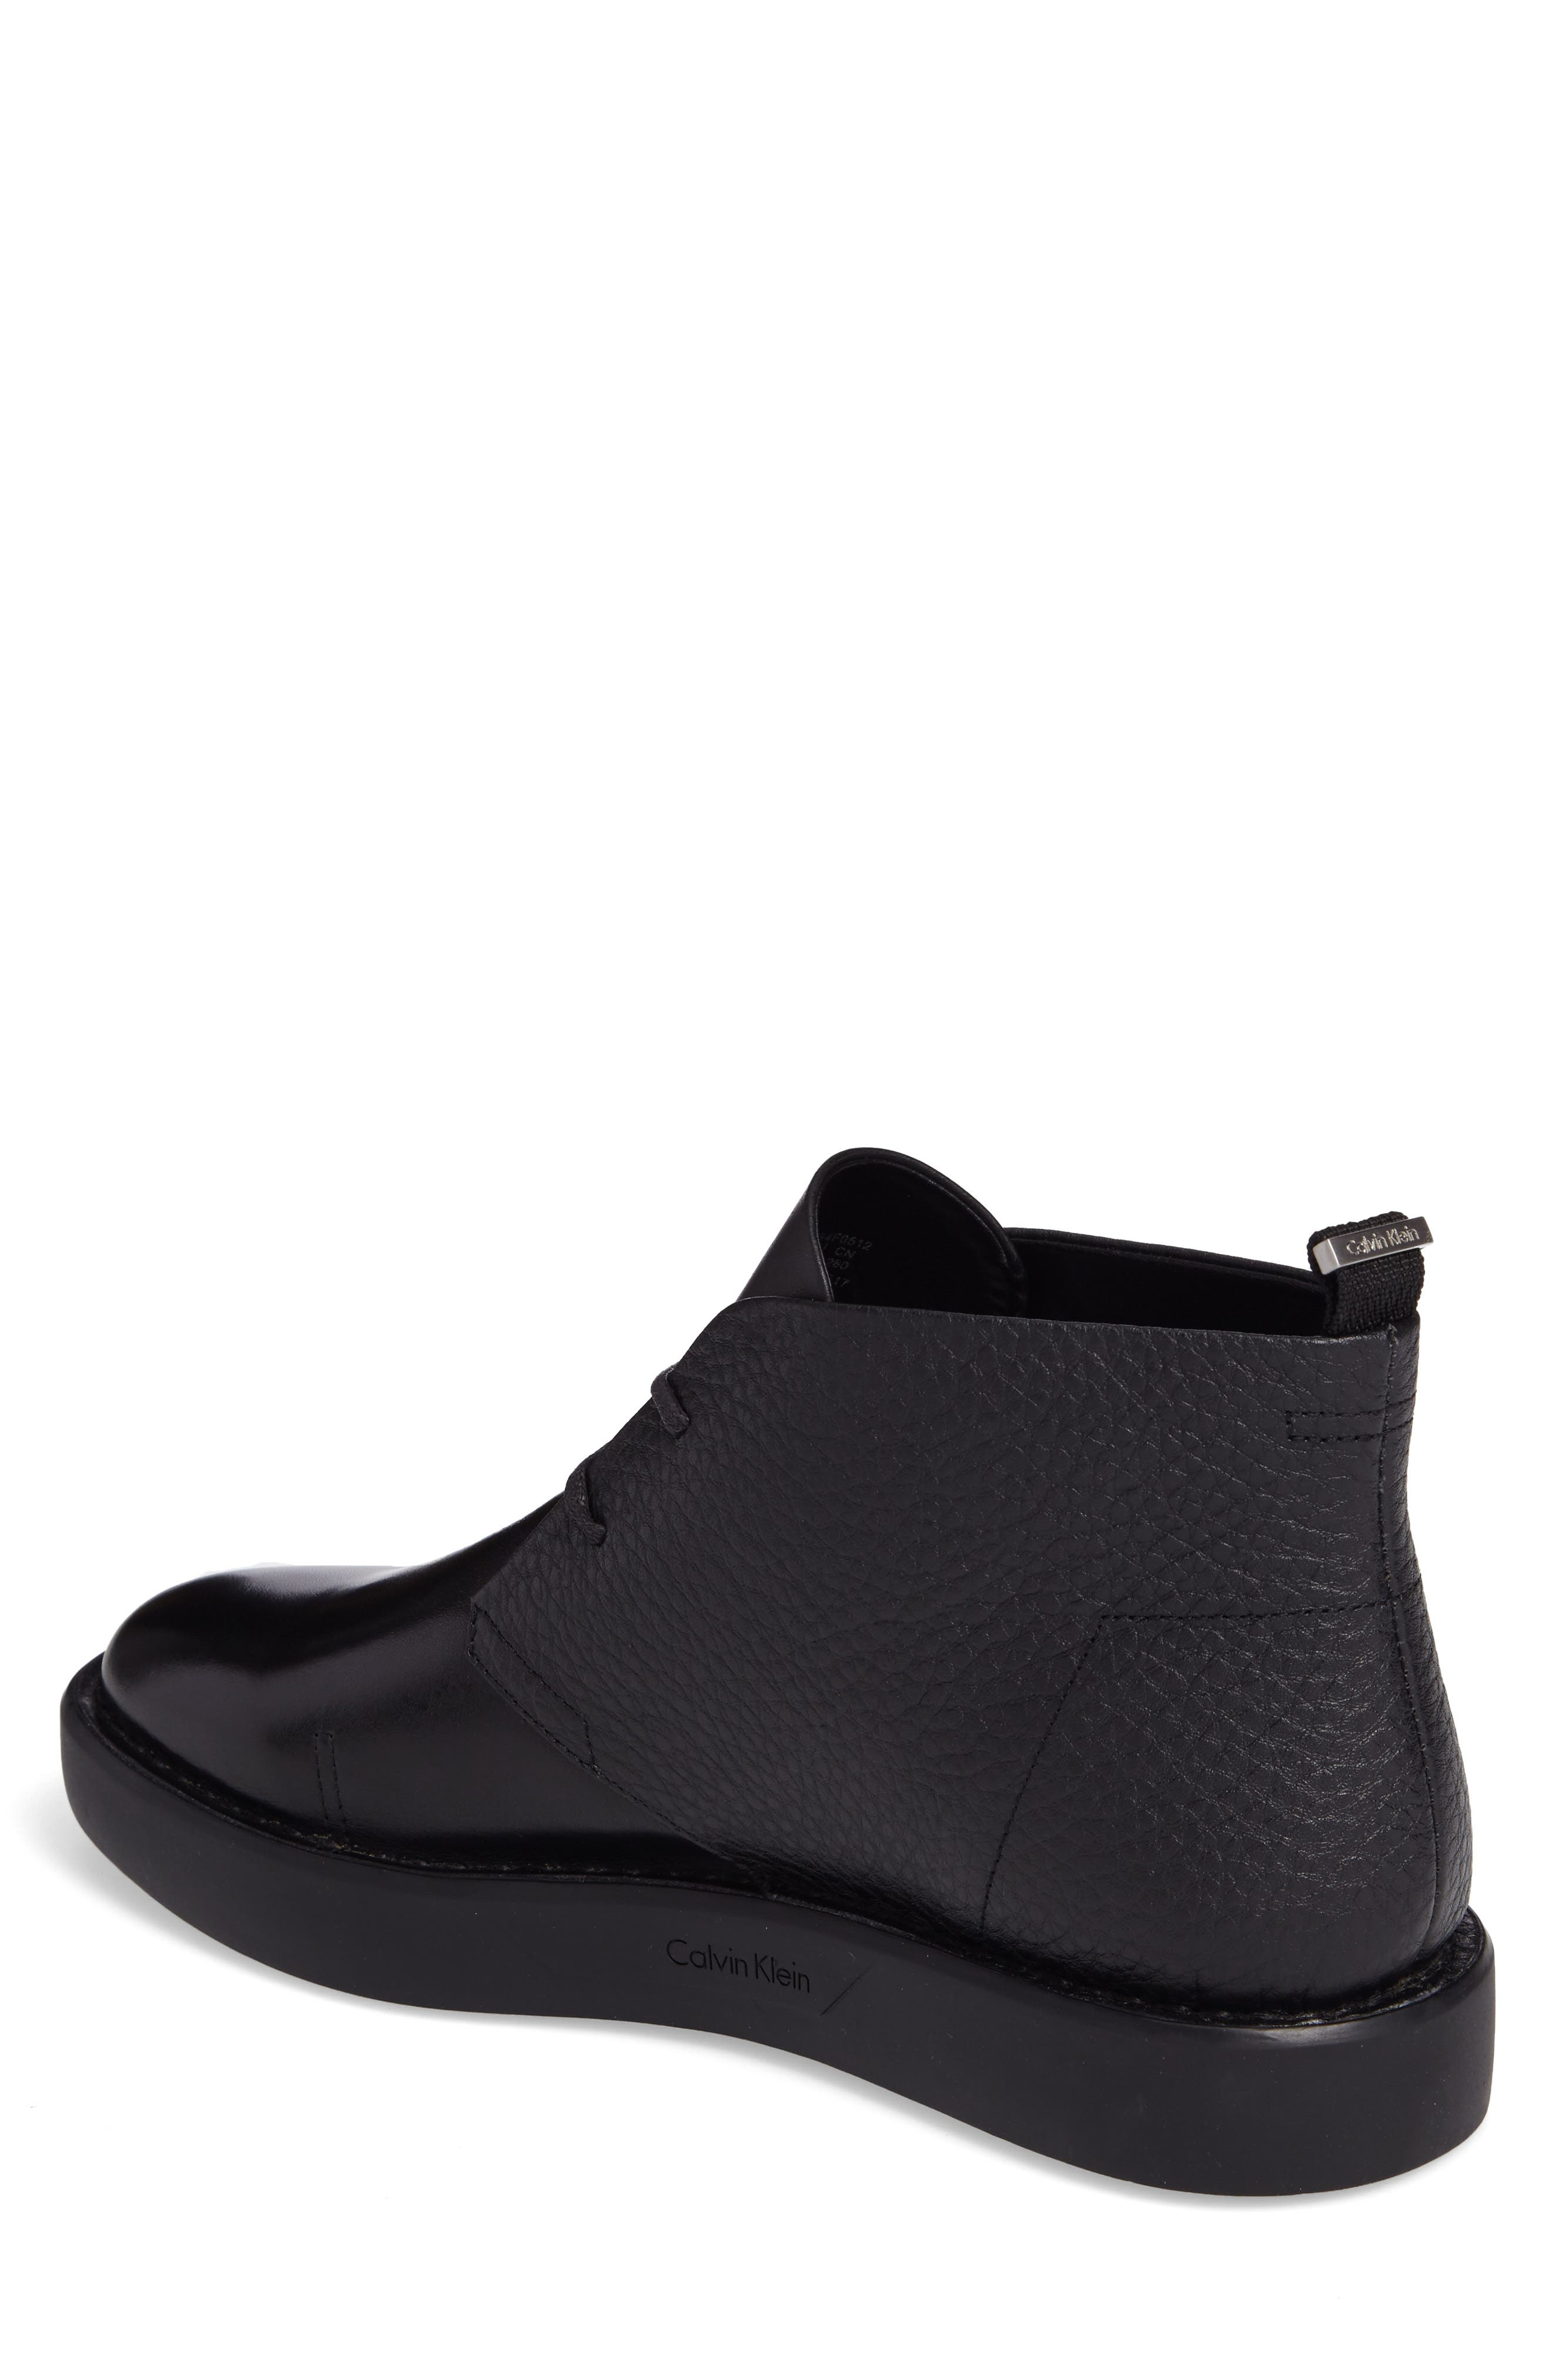 Alternate Image 2  - Calvin Klein Galway Chukka Boot (Men)